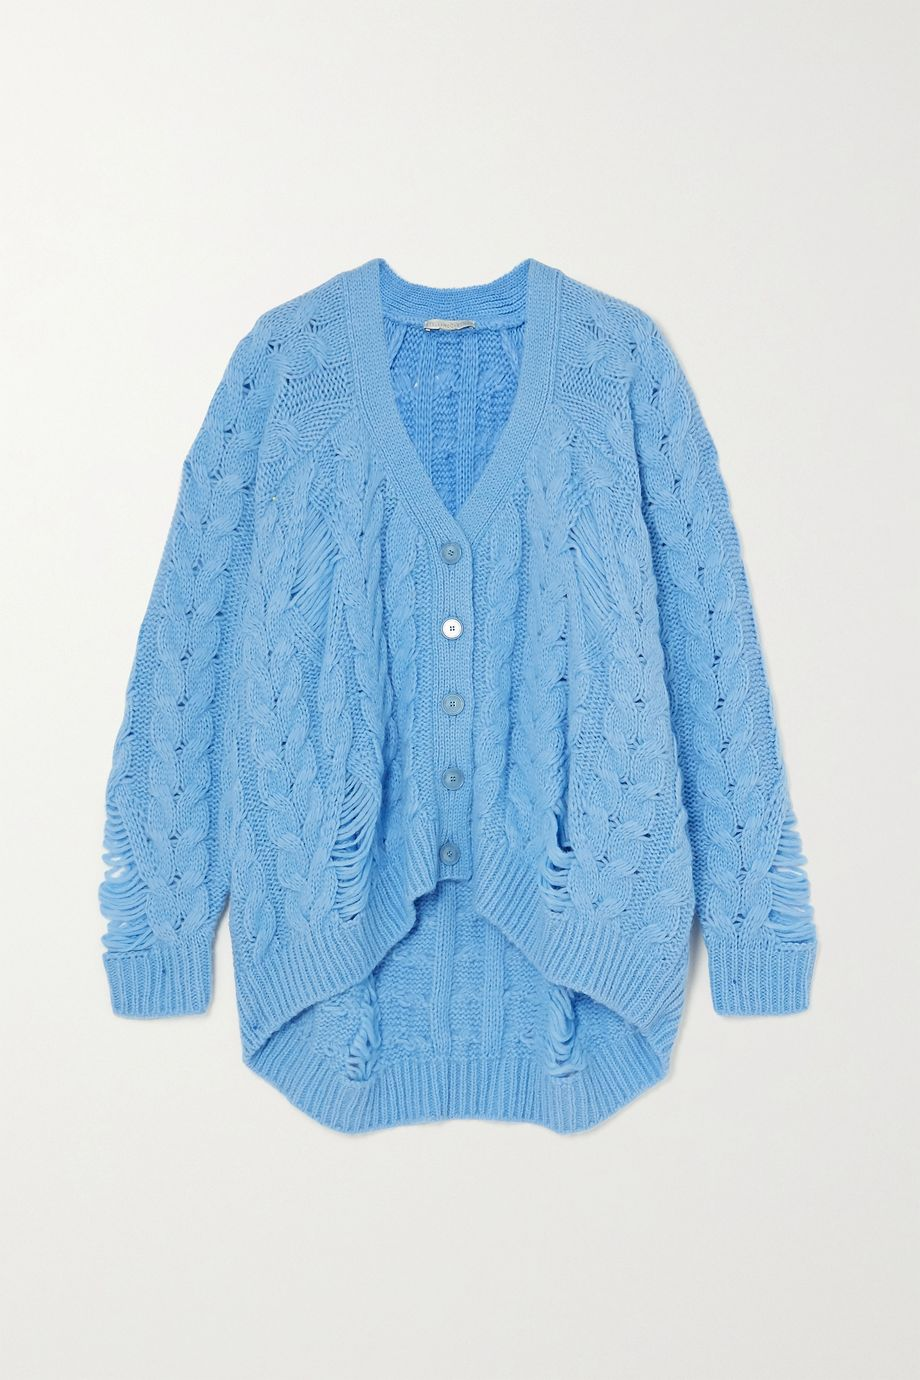 Stella McCartney Distressed cable-knit alpaca-blend cardigan